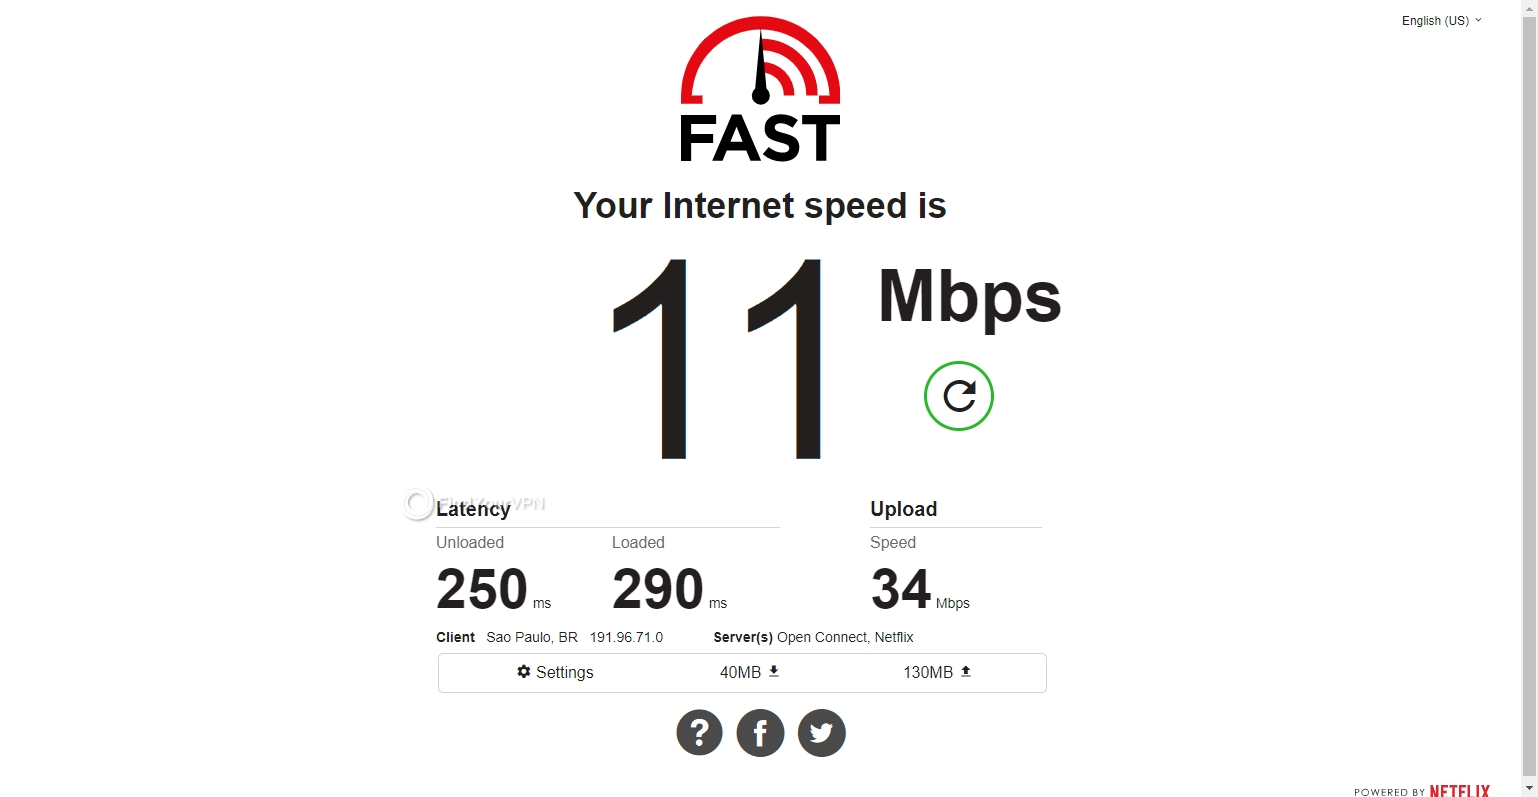 The Brazil speed test results for SaferVPN